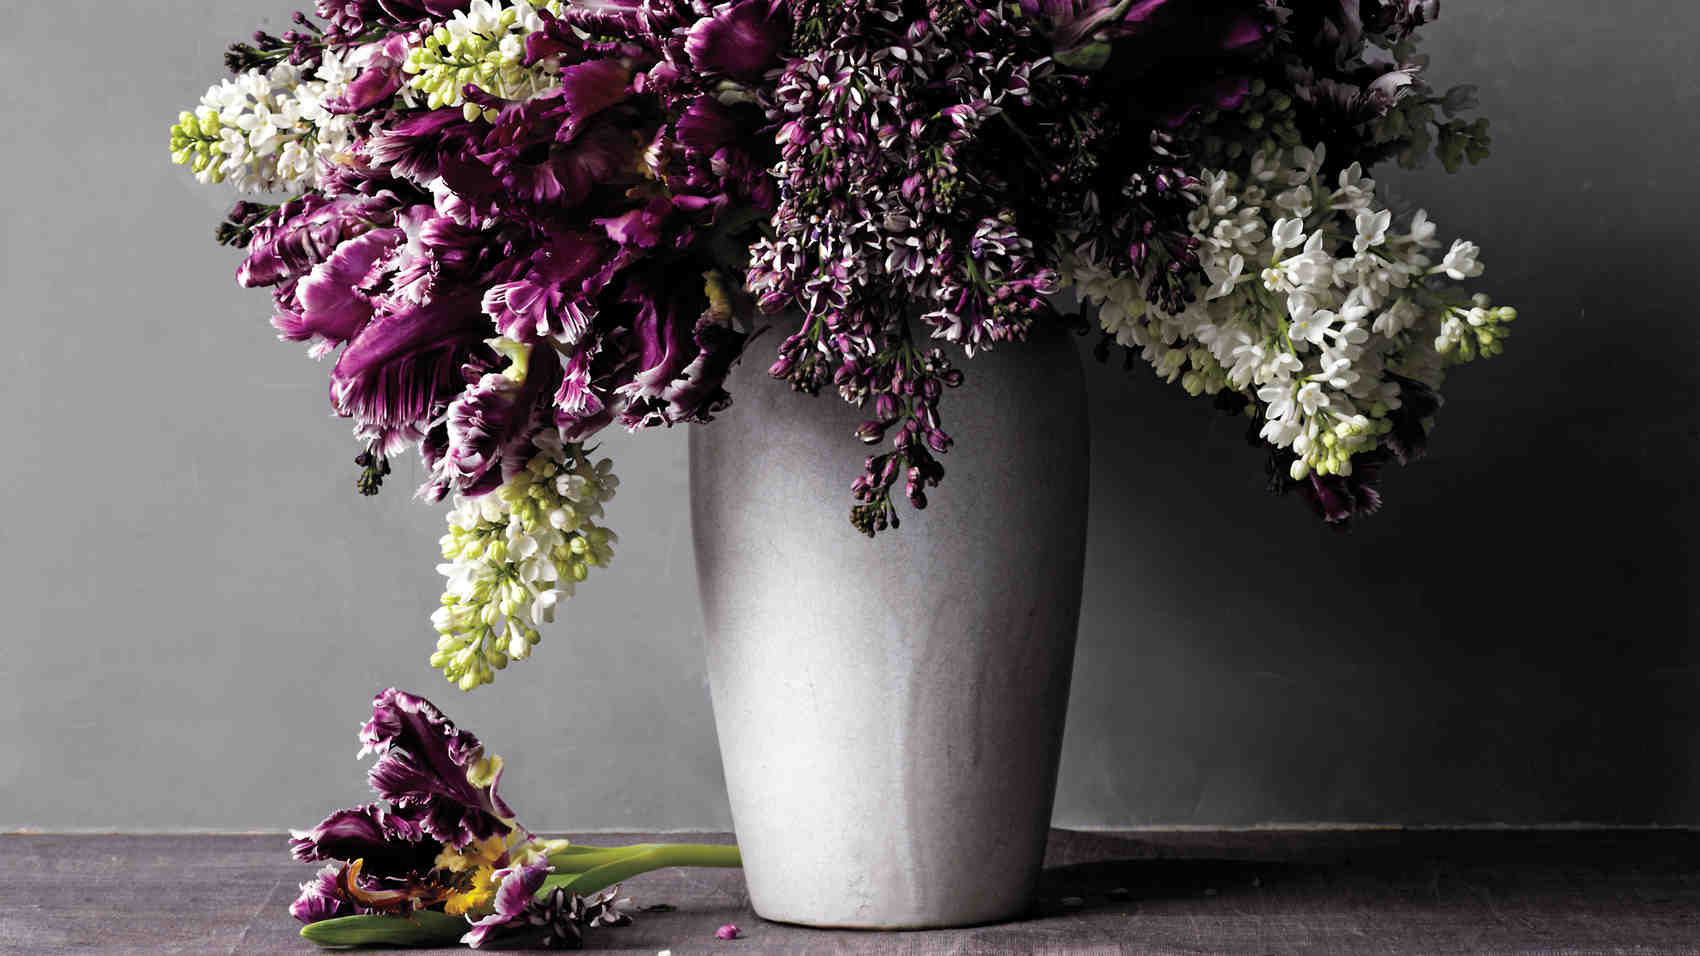 How to Help Cut Flowers Last Longer